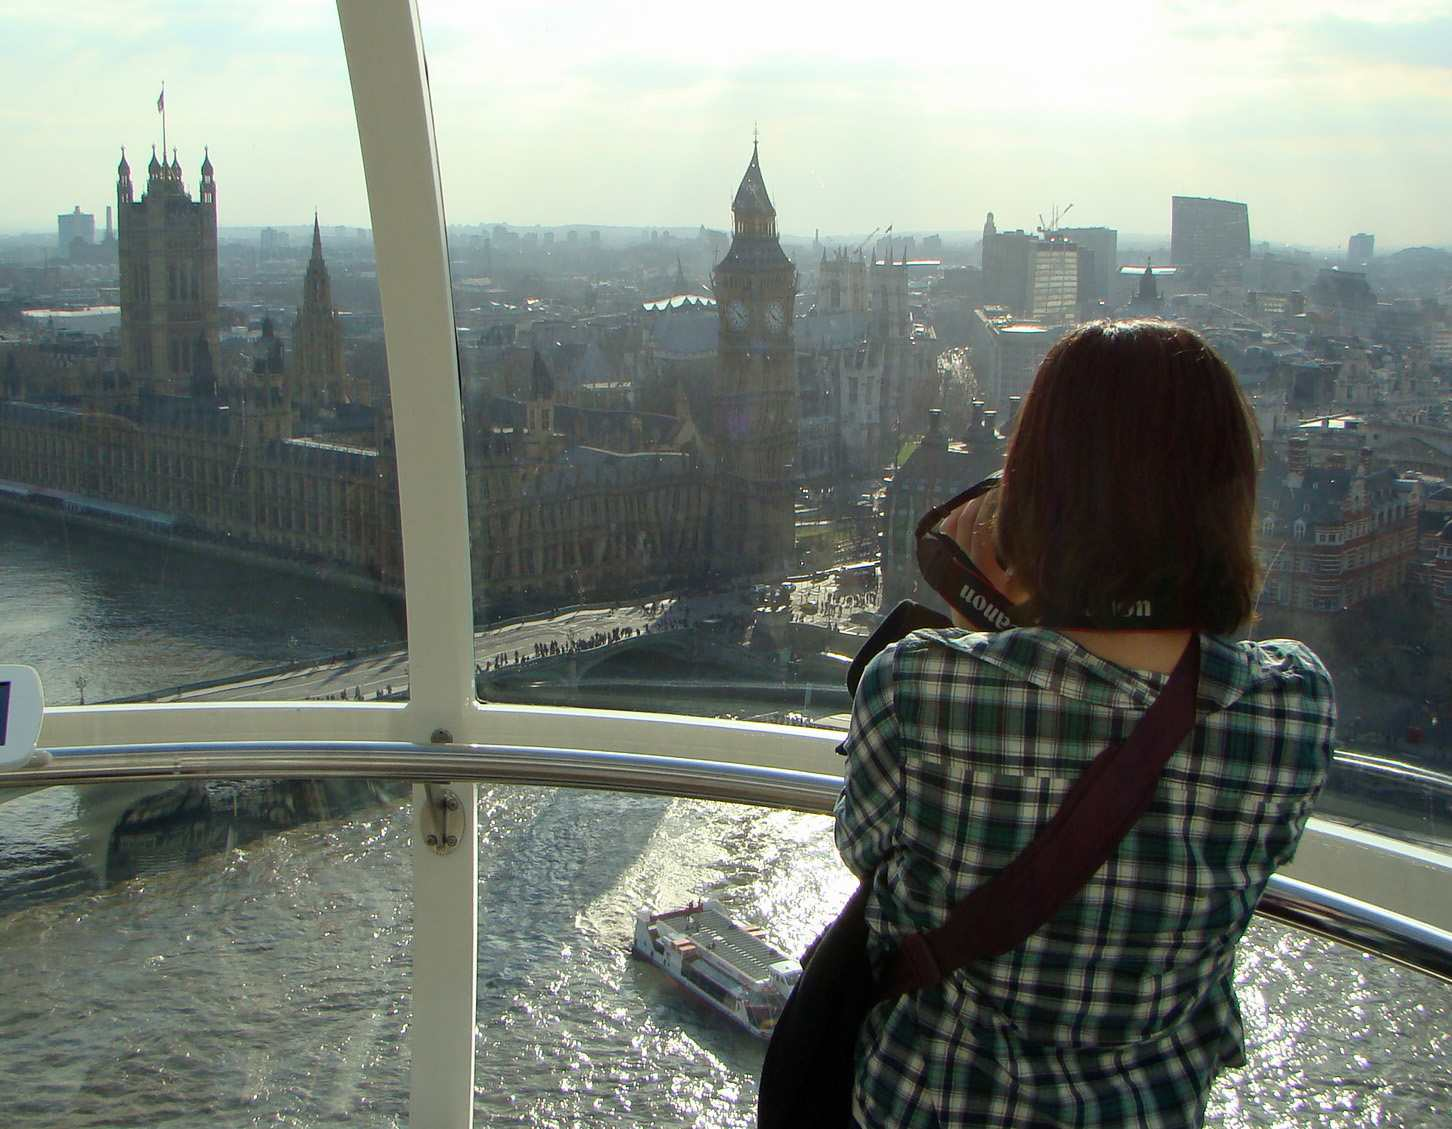 A woman taking a picture of the view